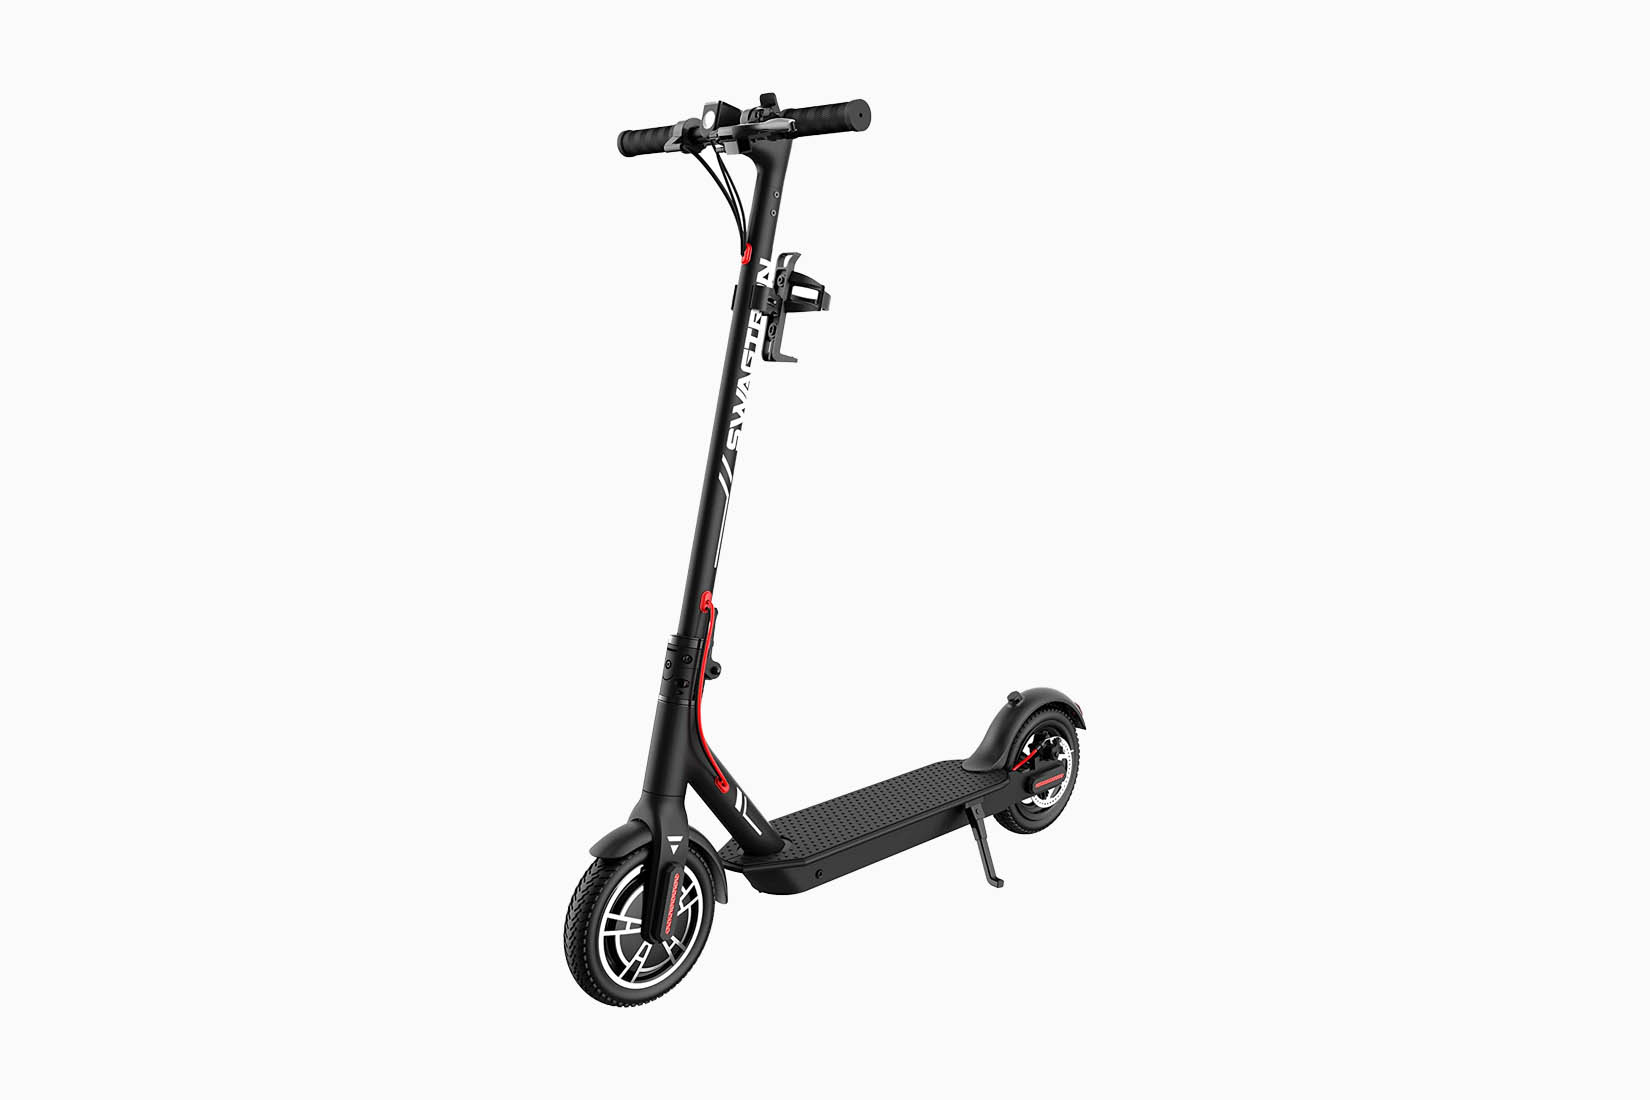 best electric scooter swagtron swagger 5 elite review - Luxe Digital